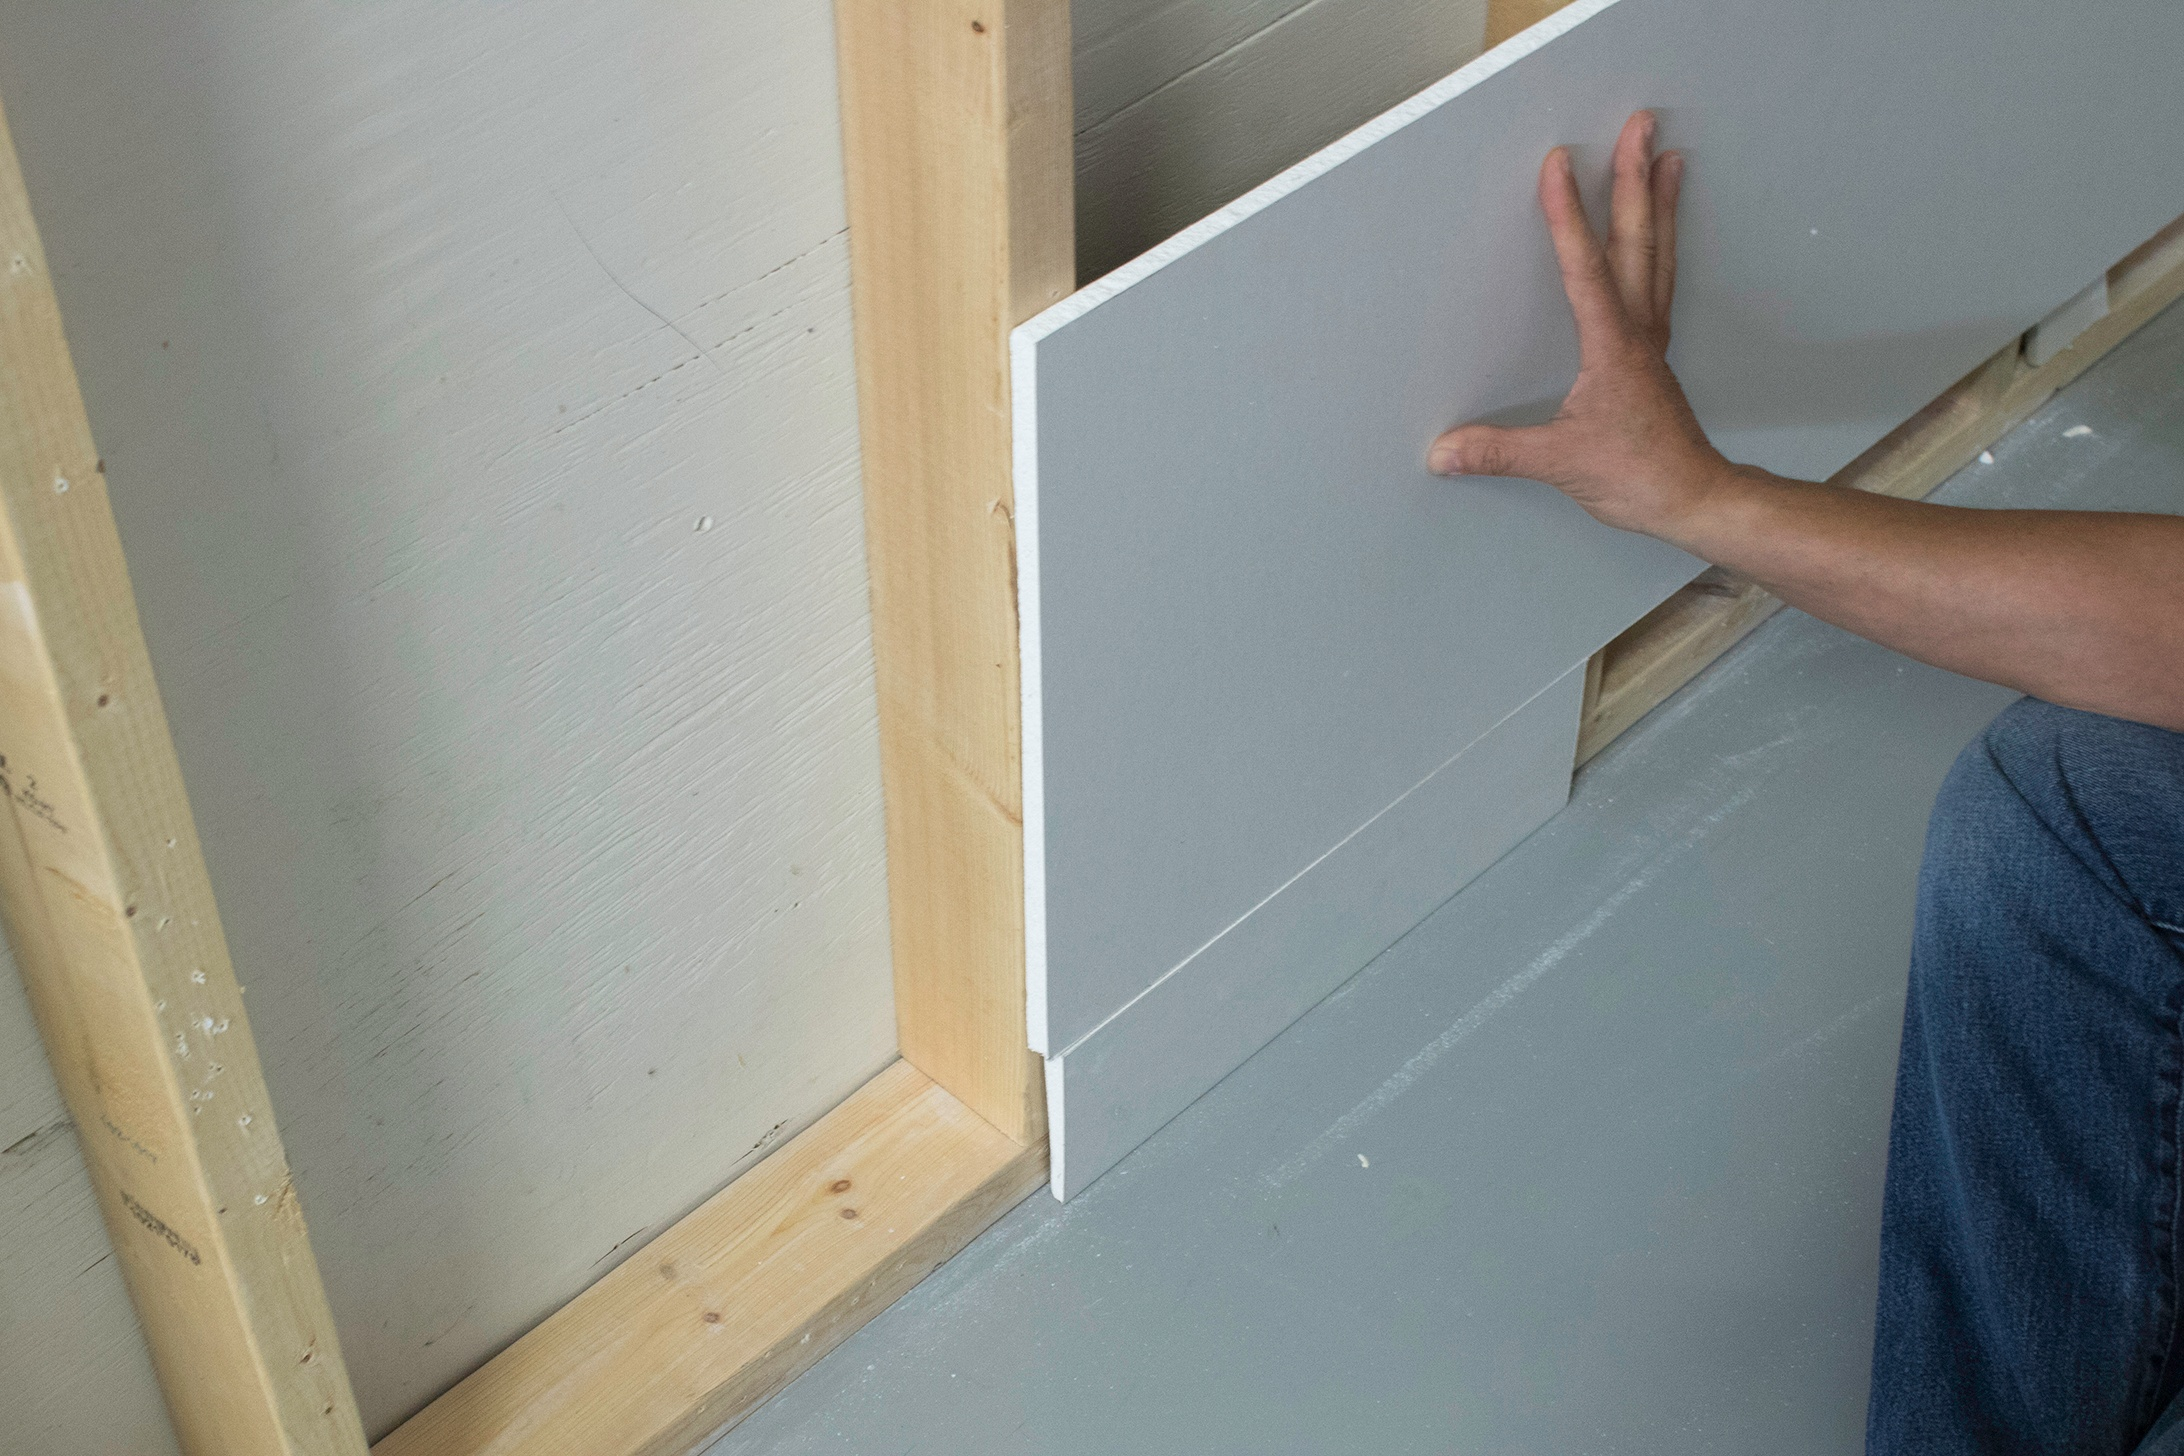 Once baseboard height is determine, take a scrap piece of drywall to act as a guide when installing the drywall to ensure adequate room for baseboard.